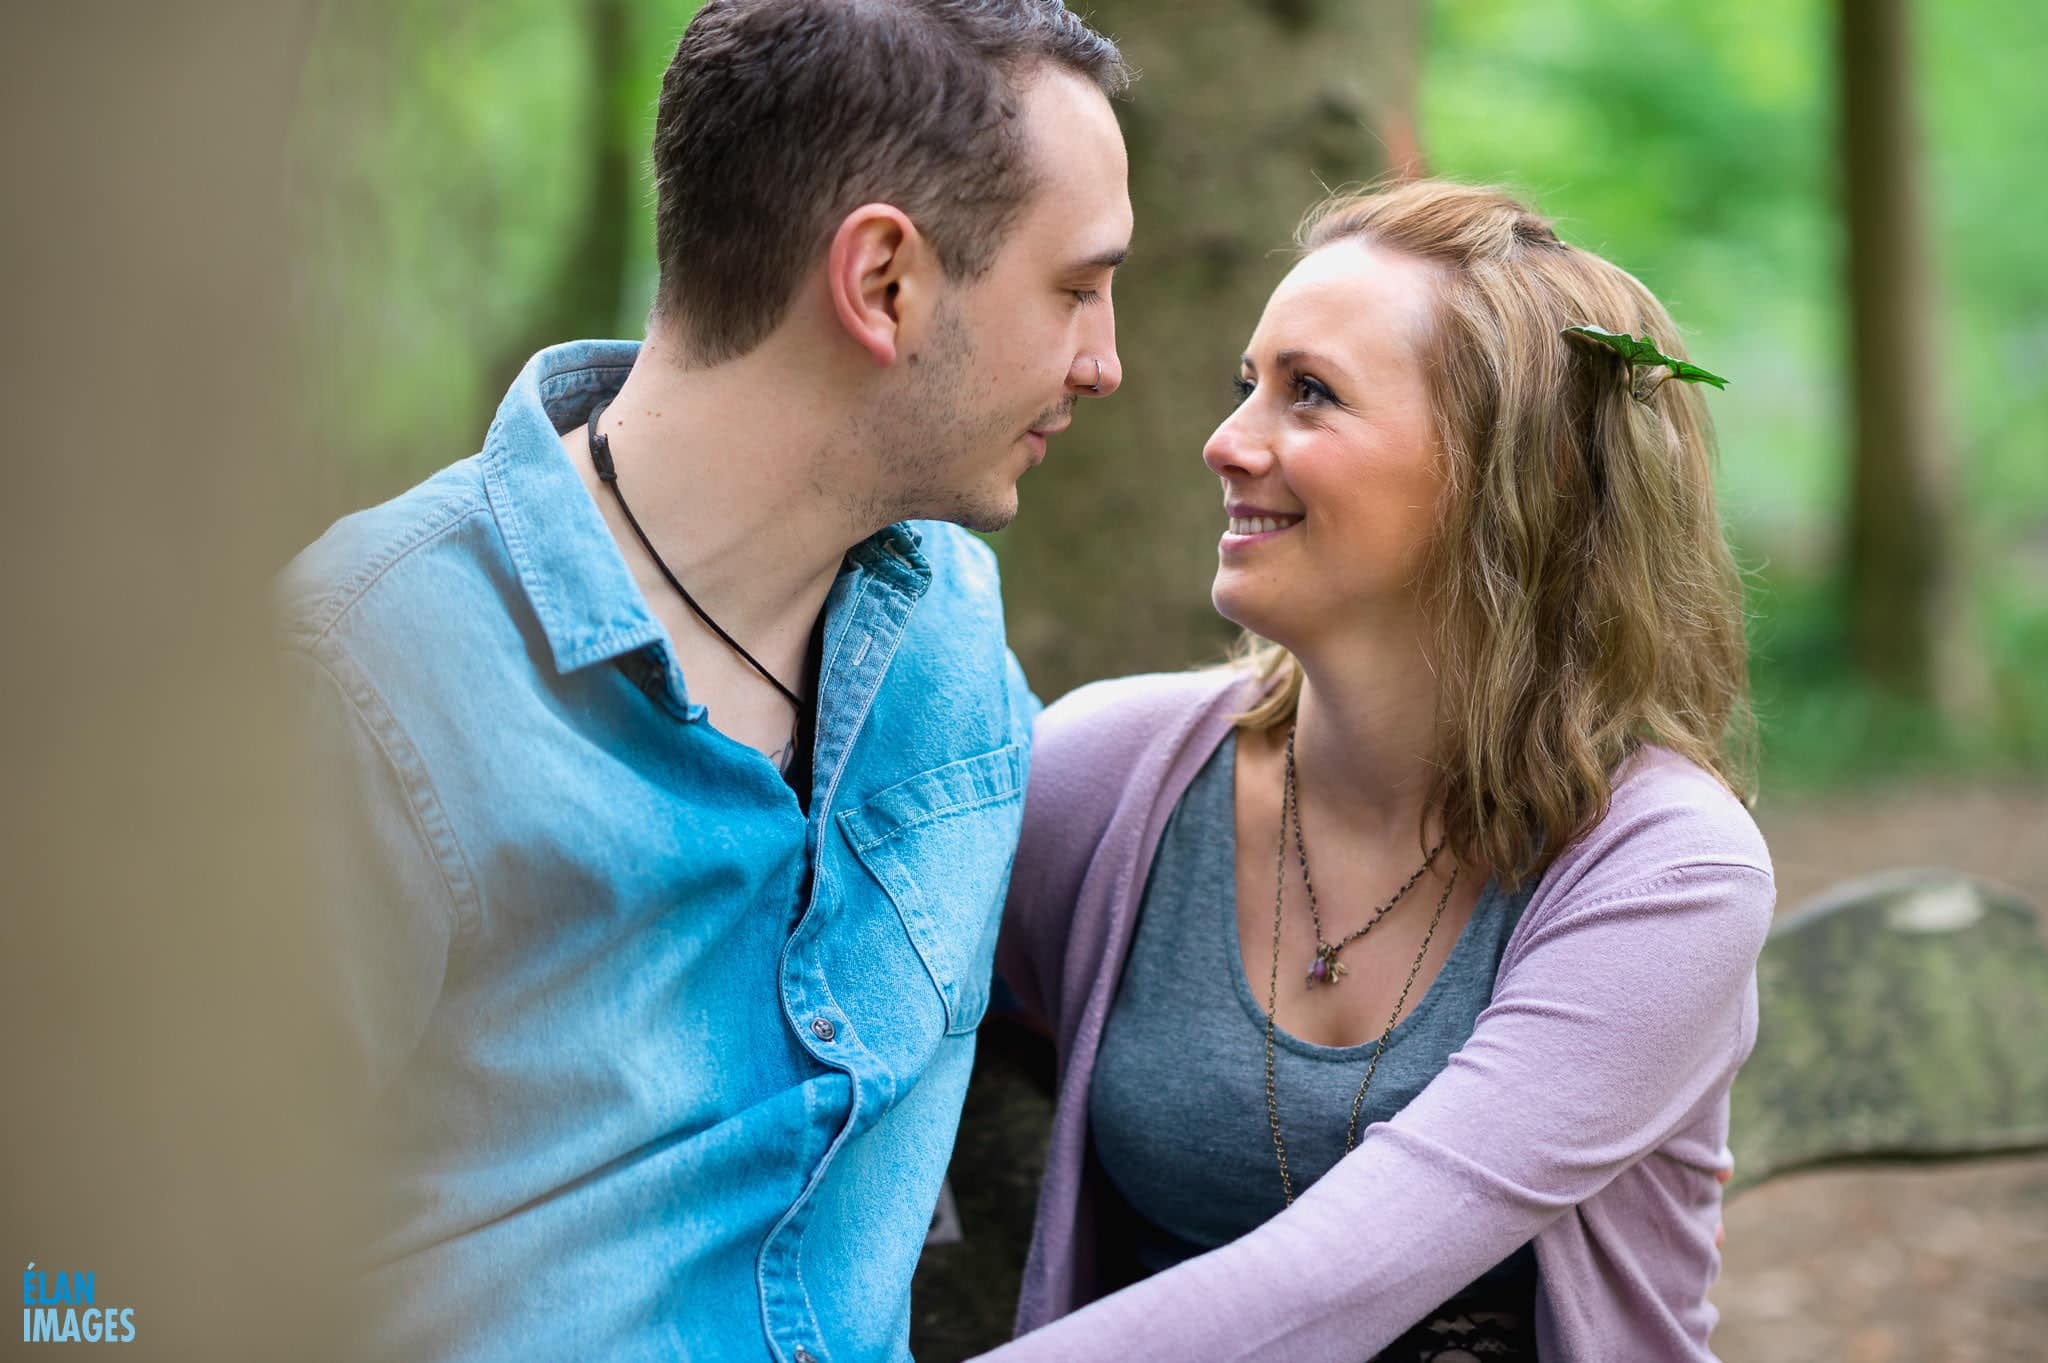 Engagement Photo Shoot in the Bluebell Woods near Bristol 42